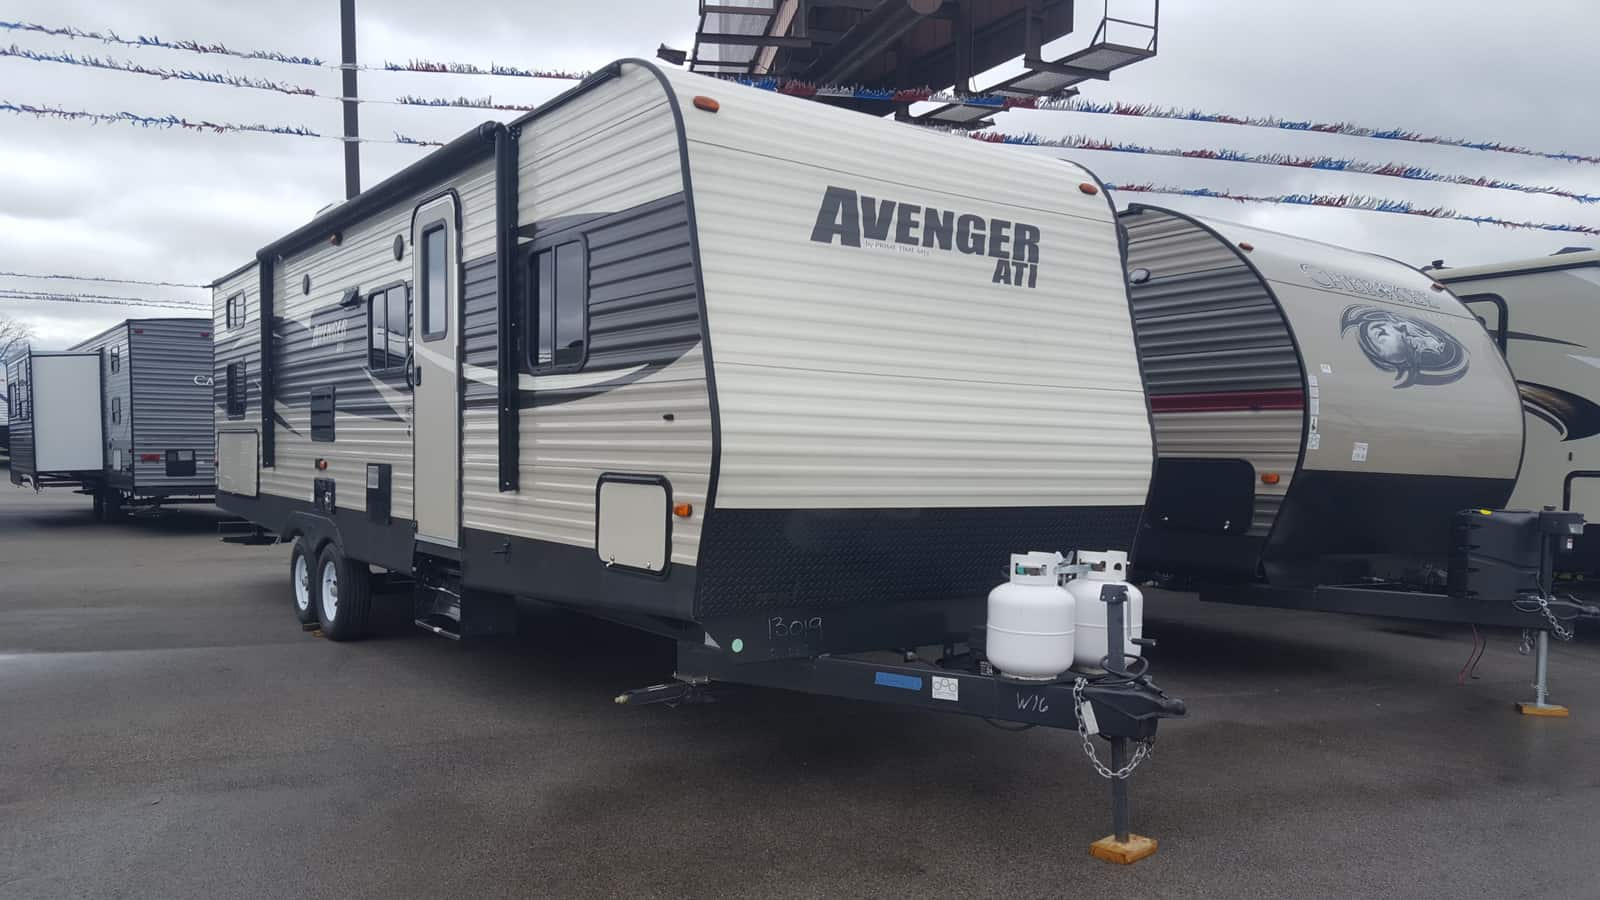 USED 2017 Prime Time AVENGER ATI 27DBS - American RV